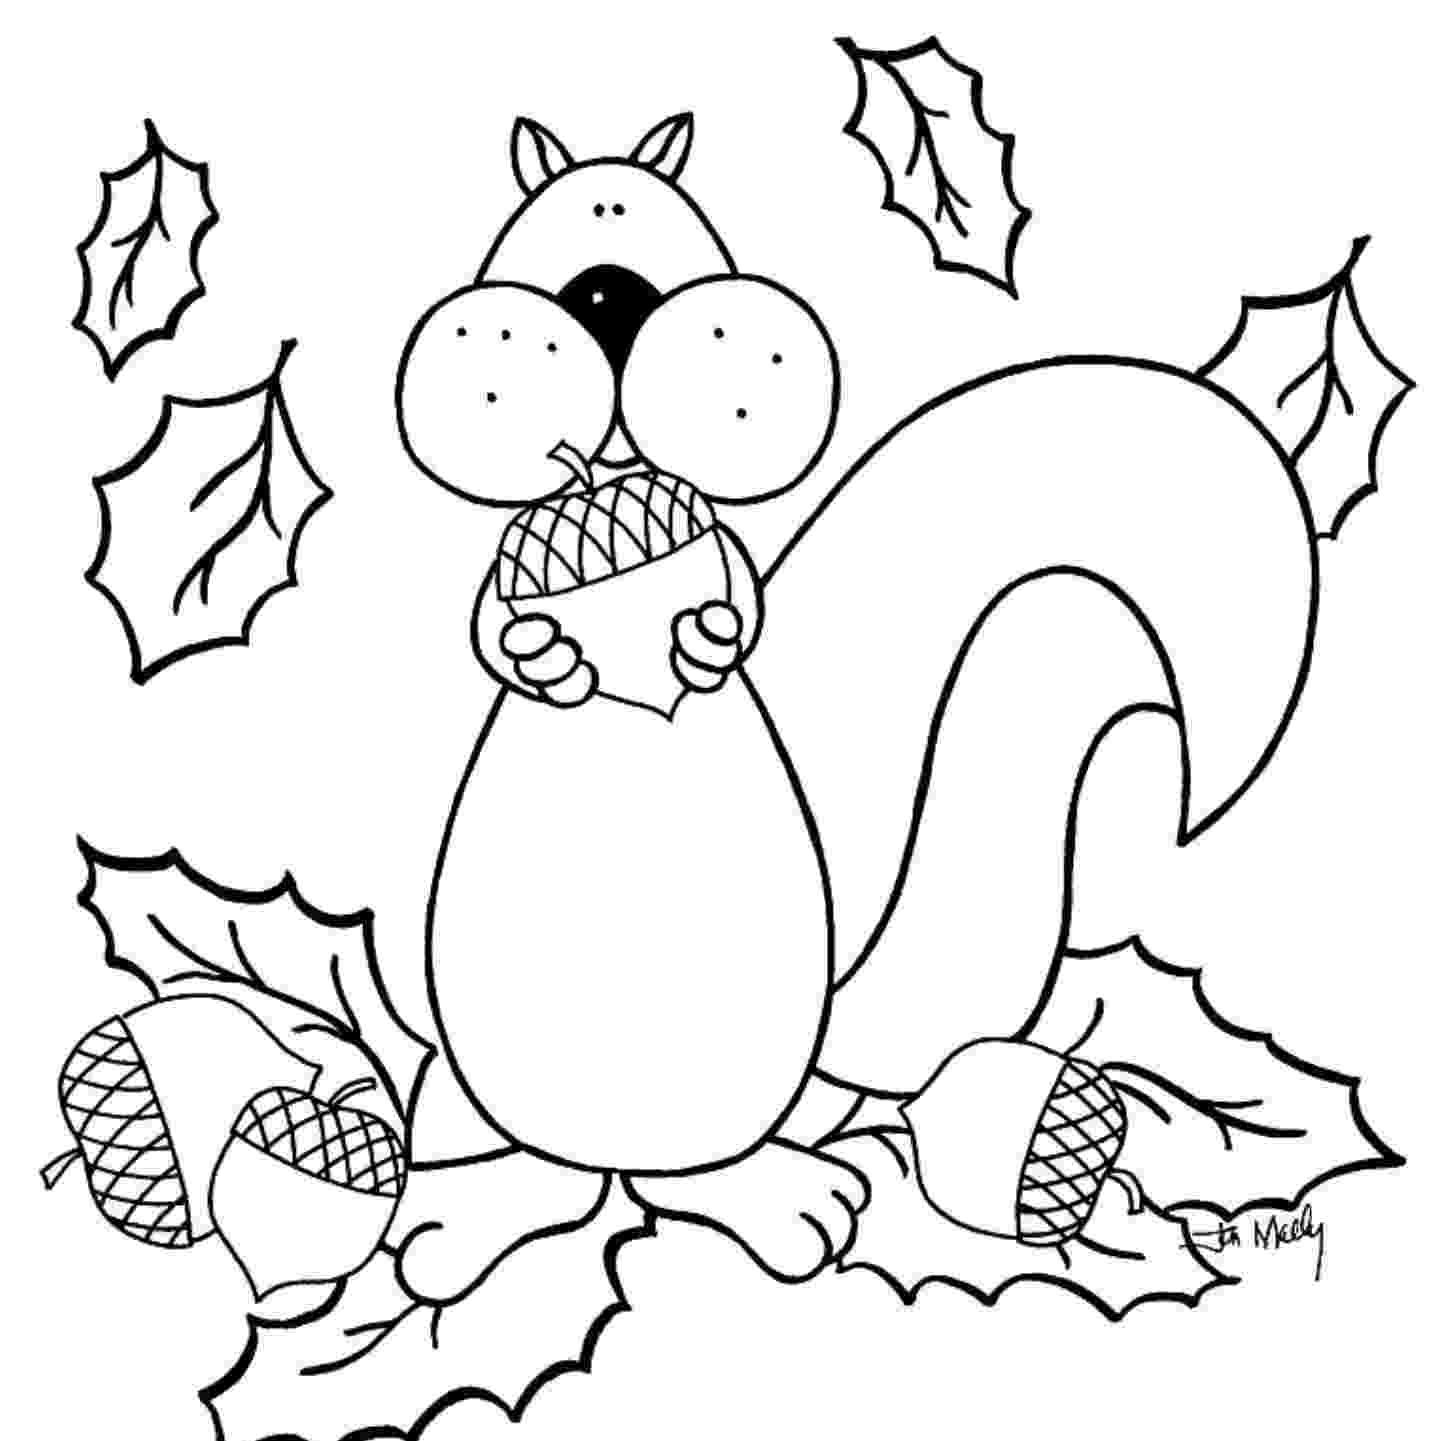 fall coloring pages printable free printable fall coloring pages for kids best printable coloring fall pages